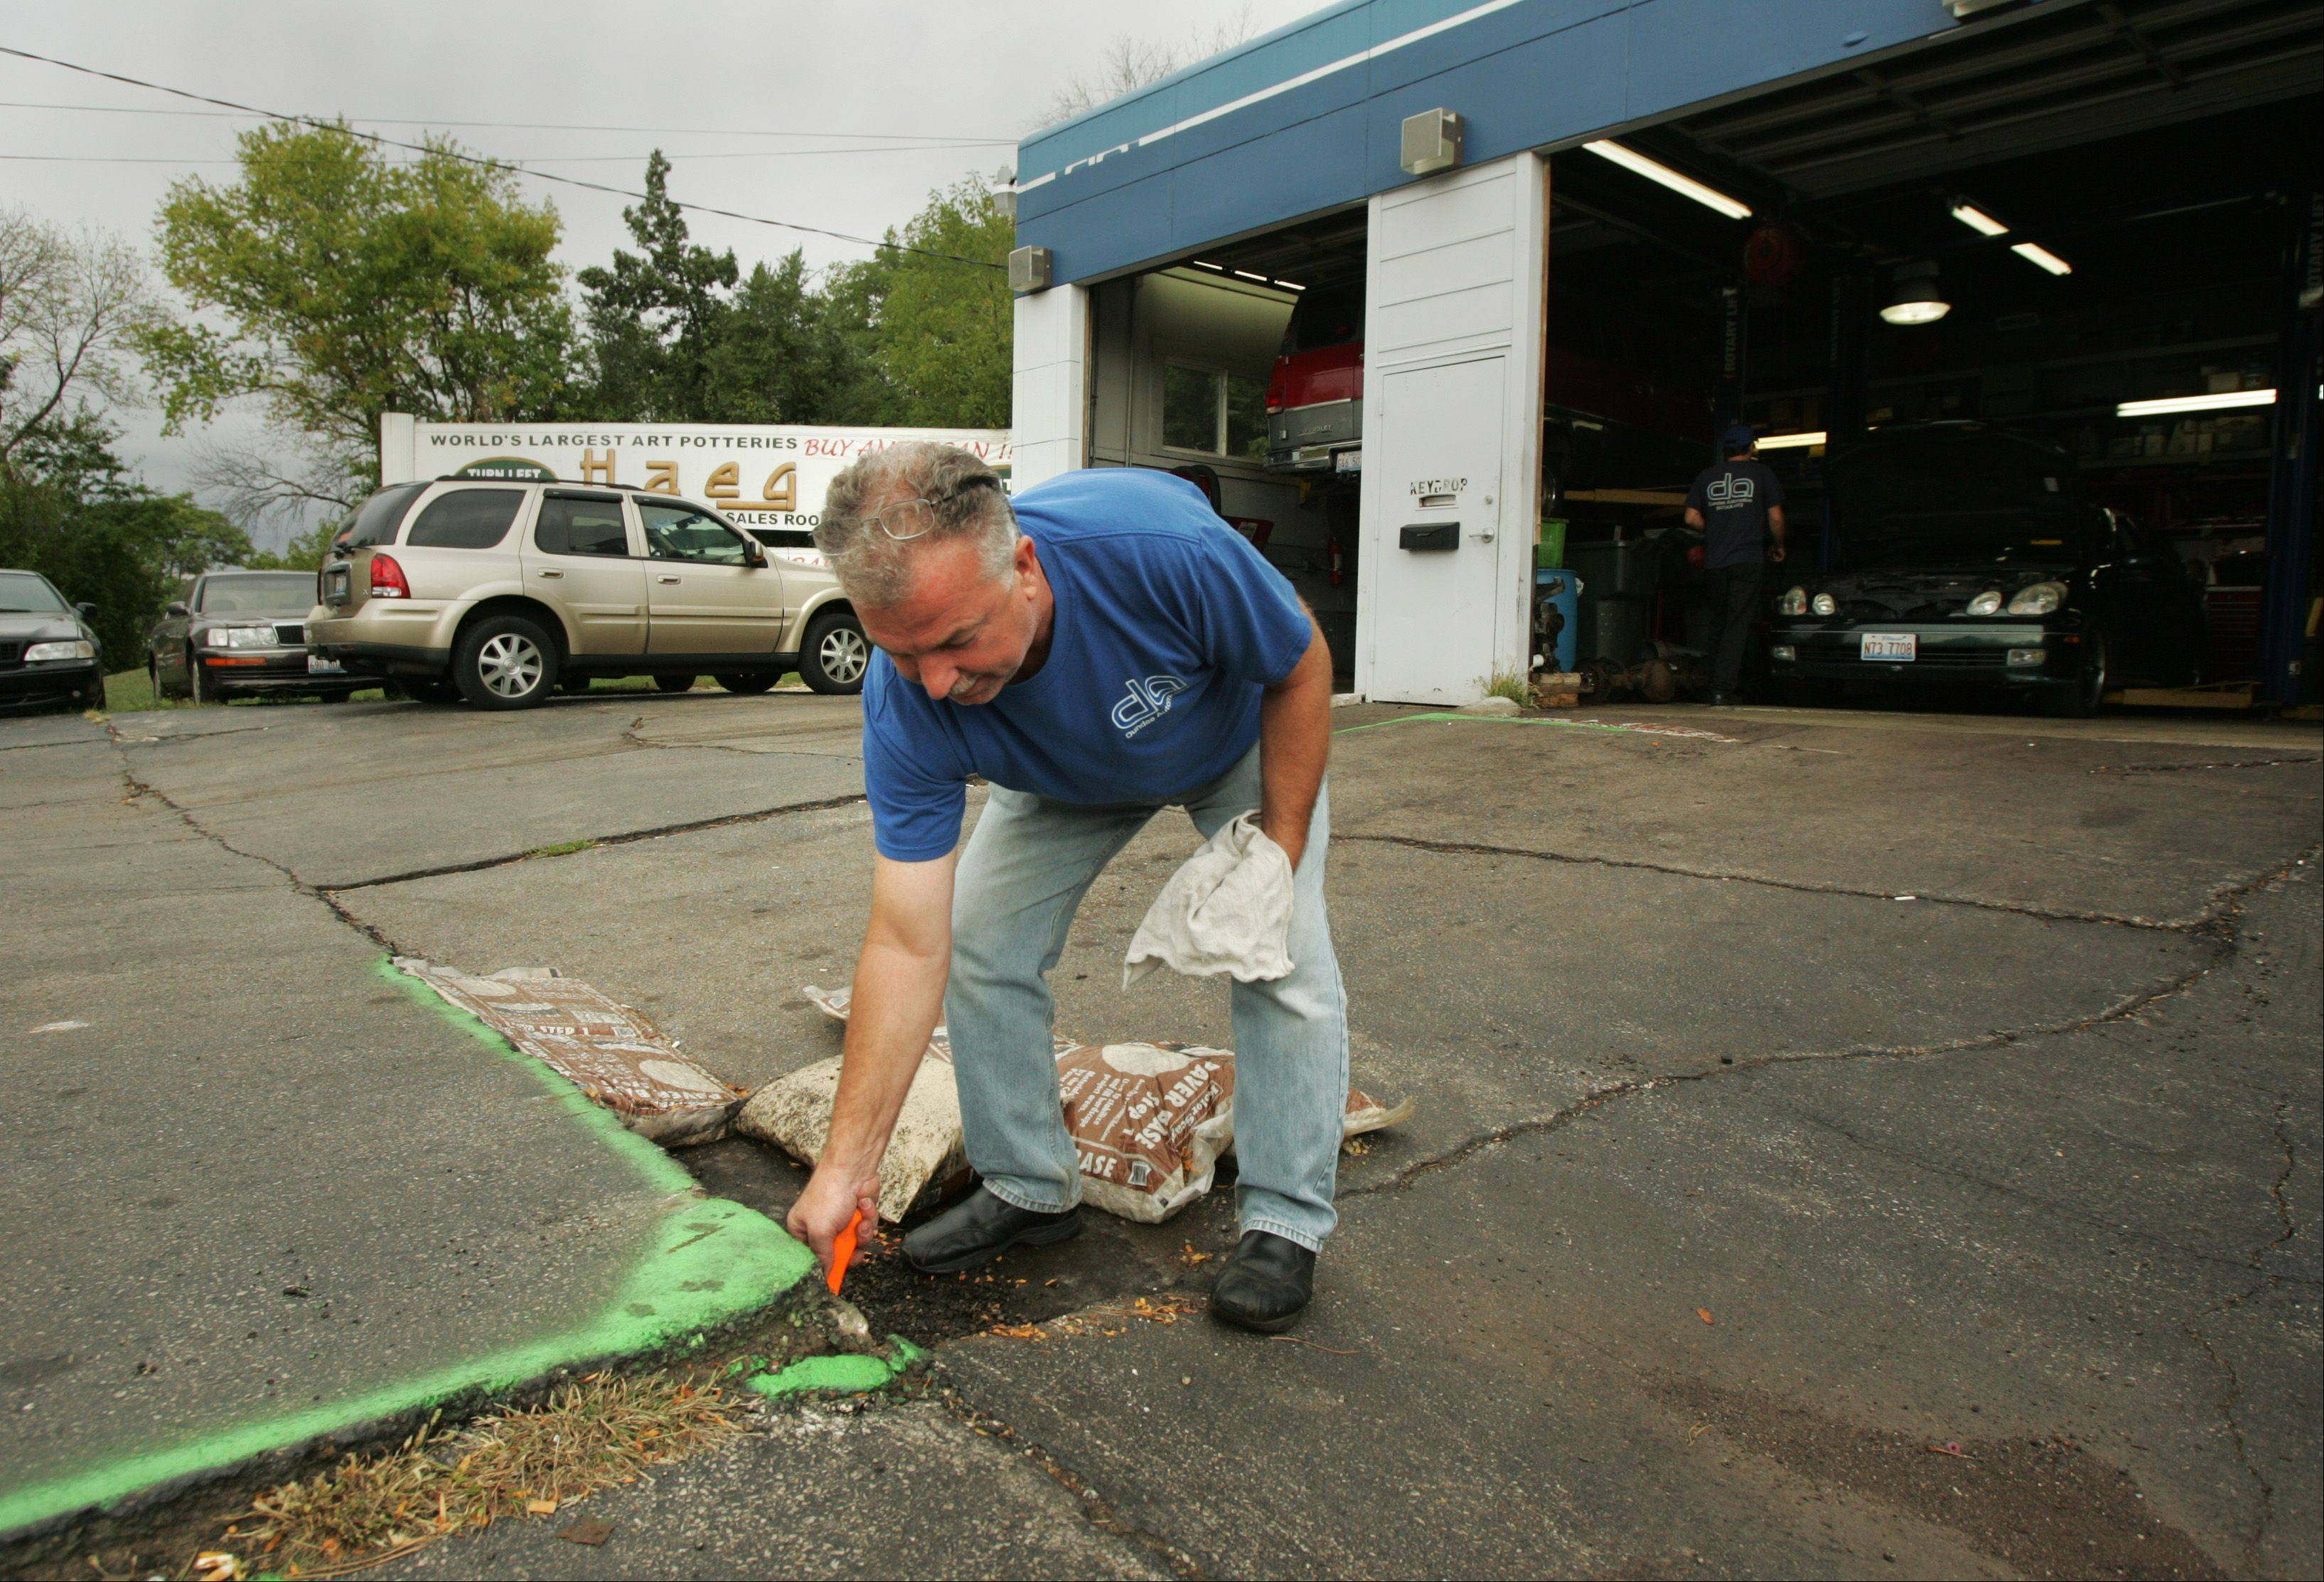 Dundee Automotive owner Randy Klemm believes that a broken water pipe beneath the parking lot in front of the East Dundee business is causing the parking lot to collapse. Here, Klemm pokes a screwdriver, which is more than a foot long, into a hole beneath the buckling asphalt.